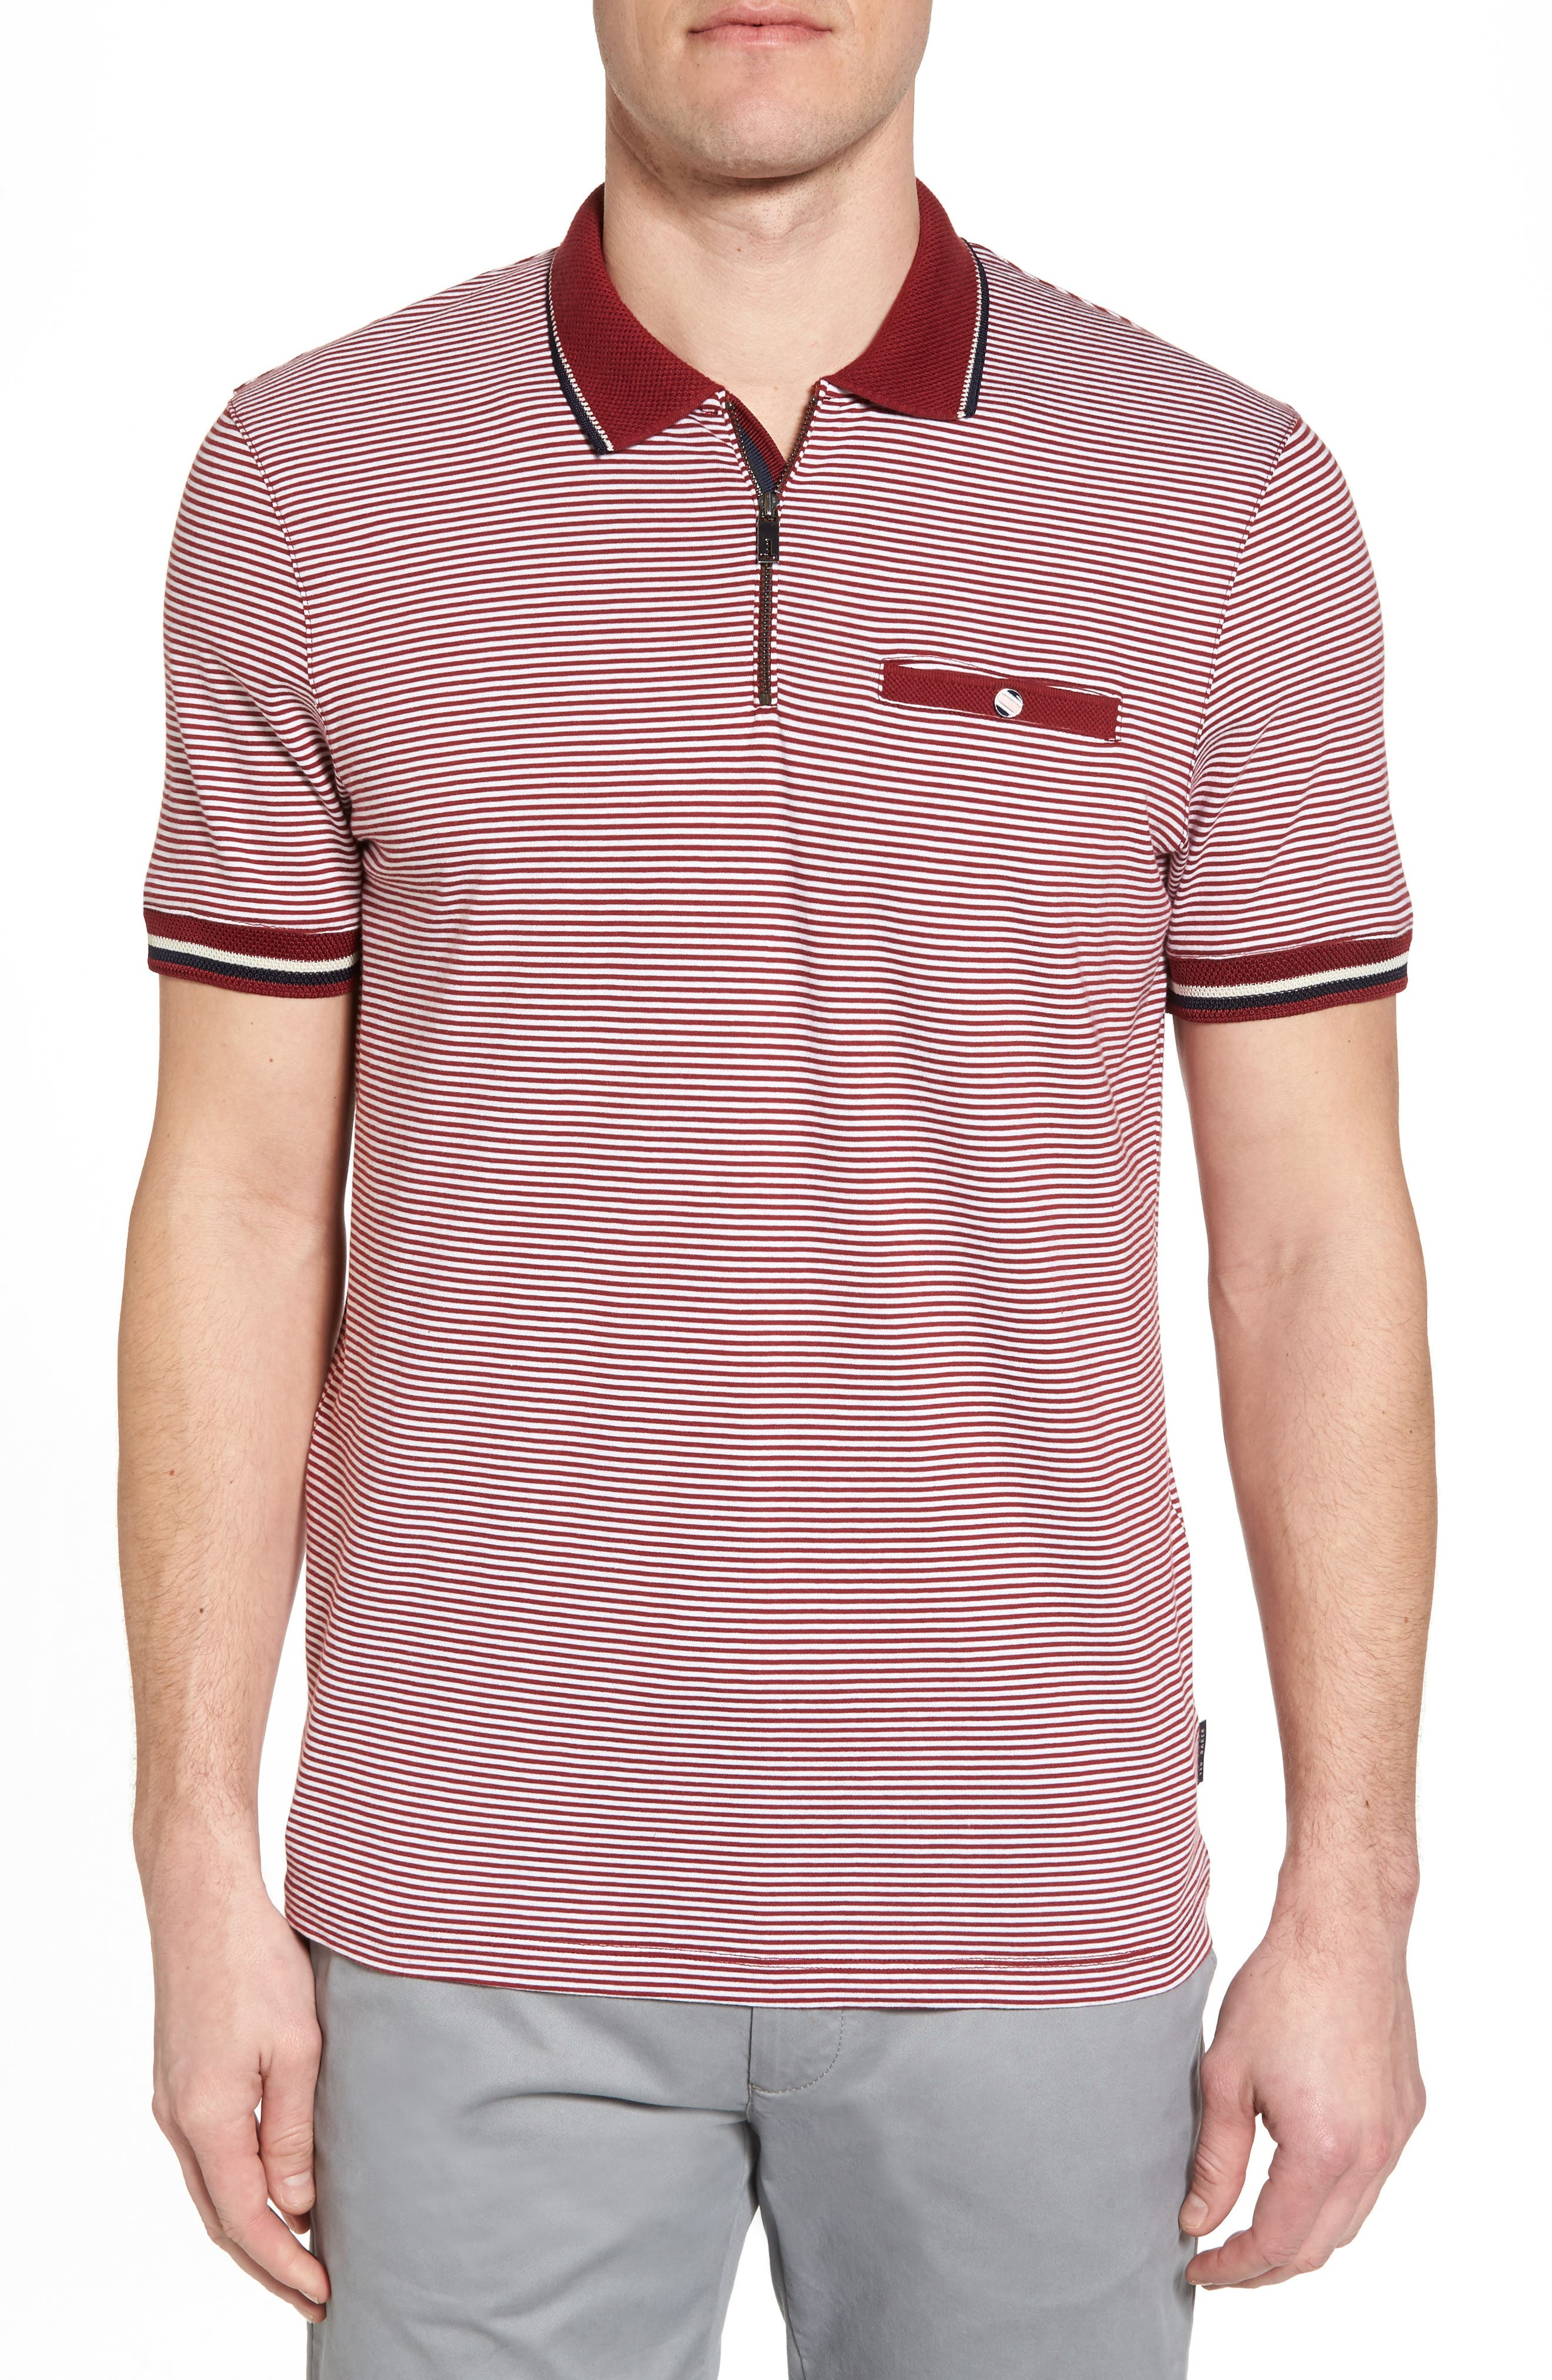 Whiptt Trim Fit Zip Polo,                         Main,                         color, Dark Red